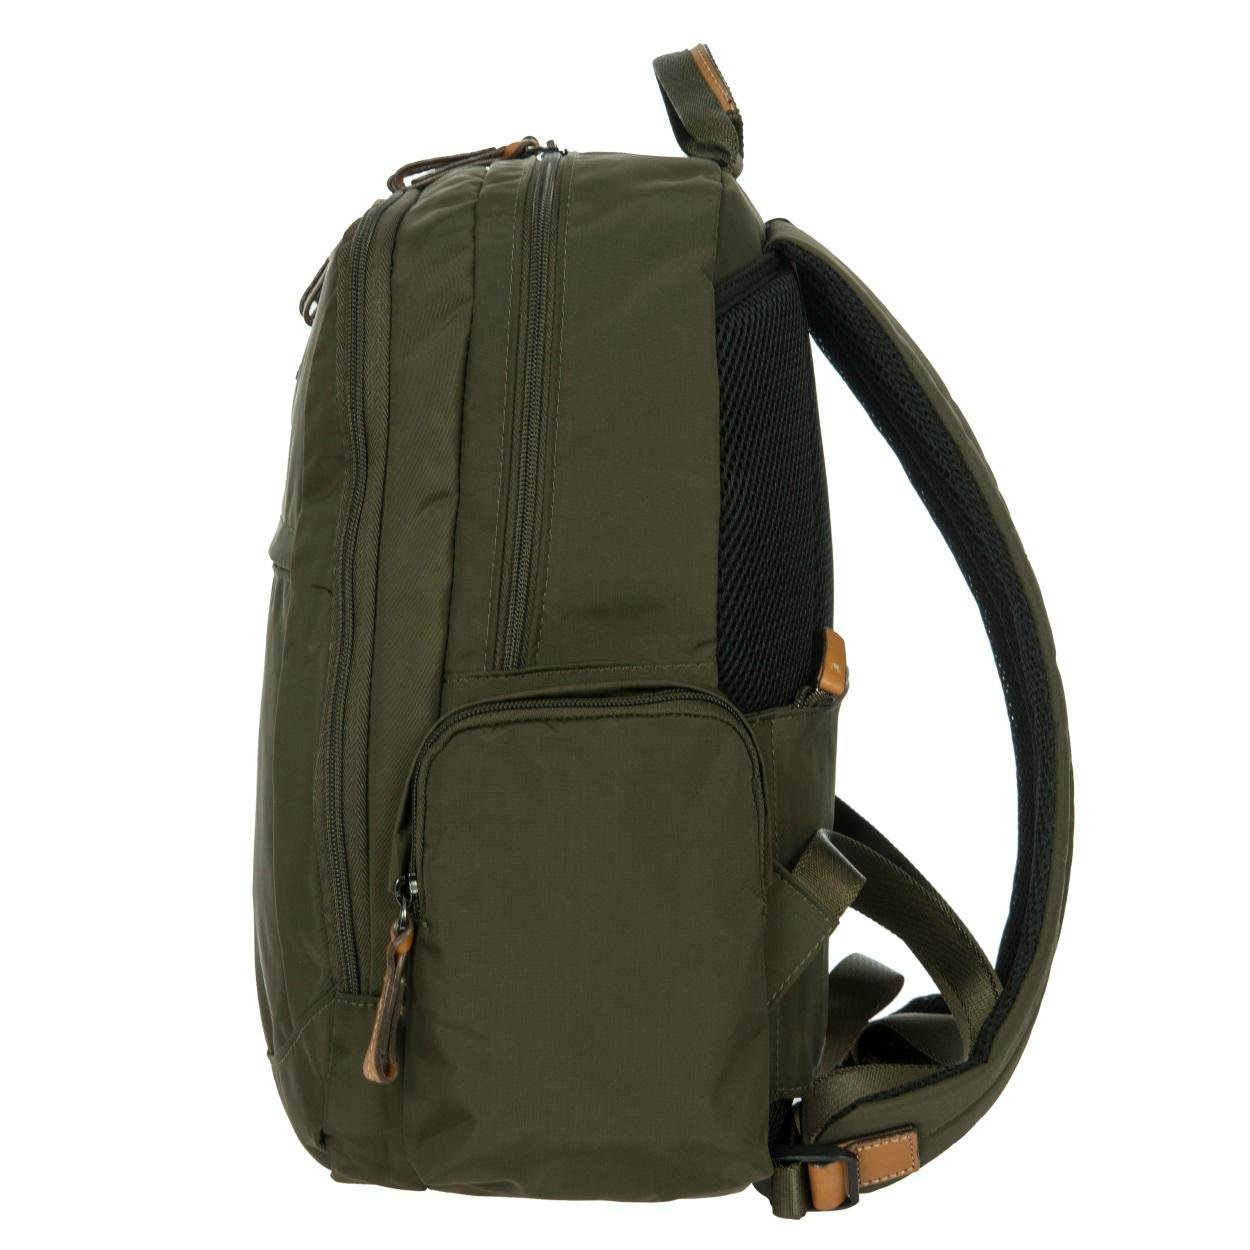 Bric's X-Bag/x-Travel 2.0 Nomad Laptop|Tablet Business Backpack, Navy, One Size by Bric's (Image #4)